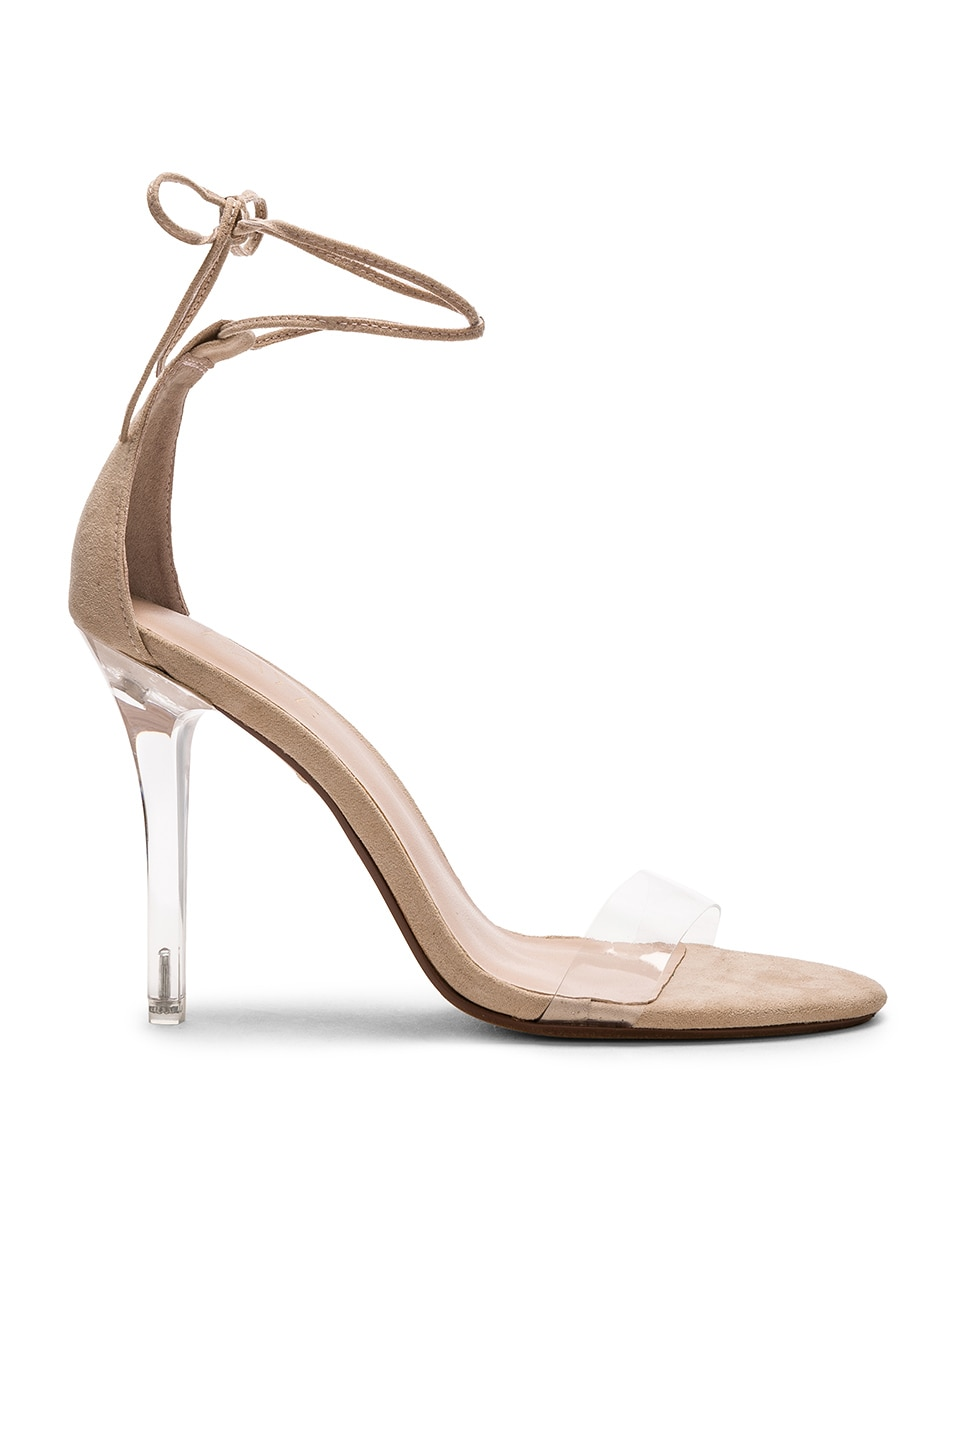 RAYE Alton Heel in Nude